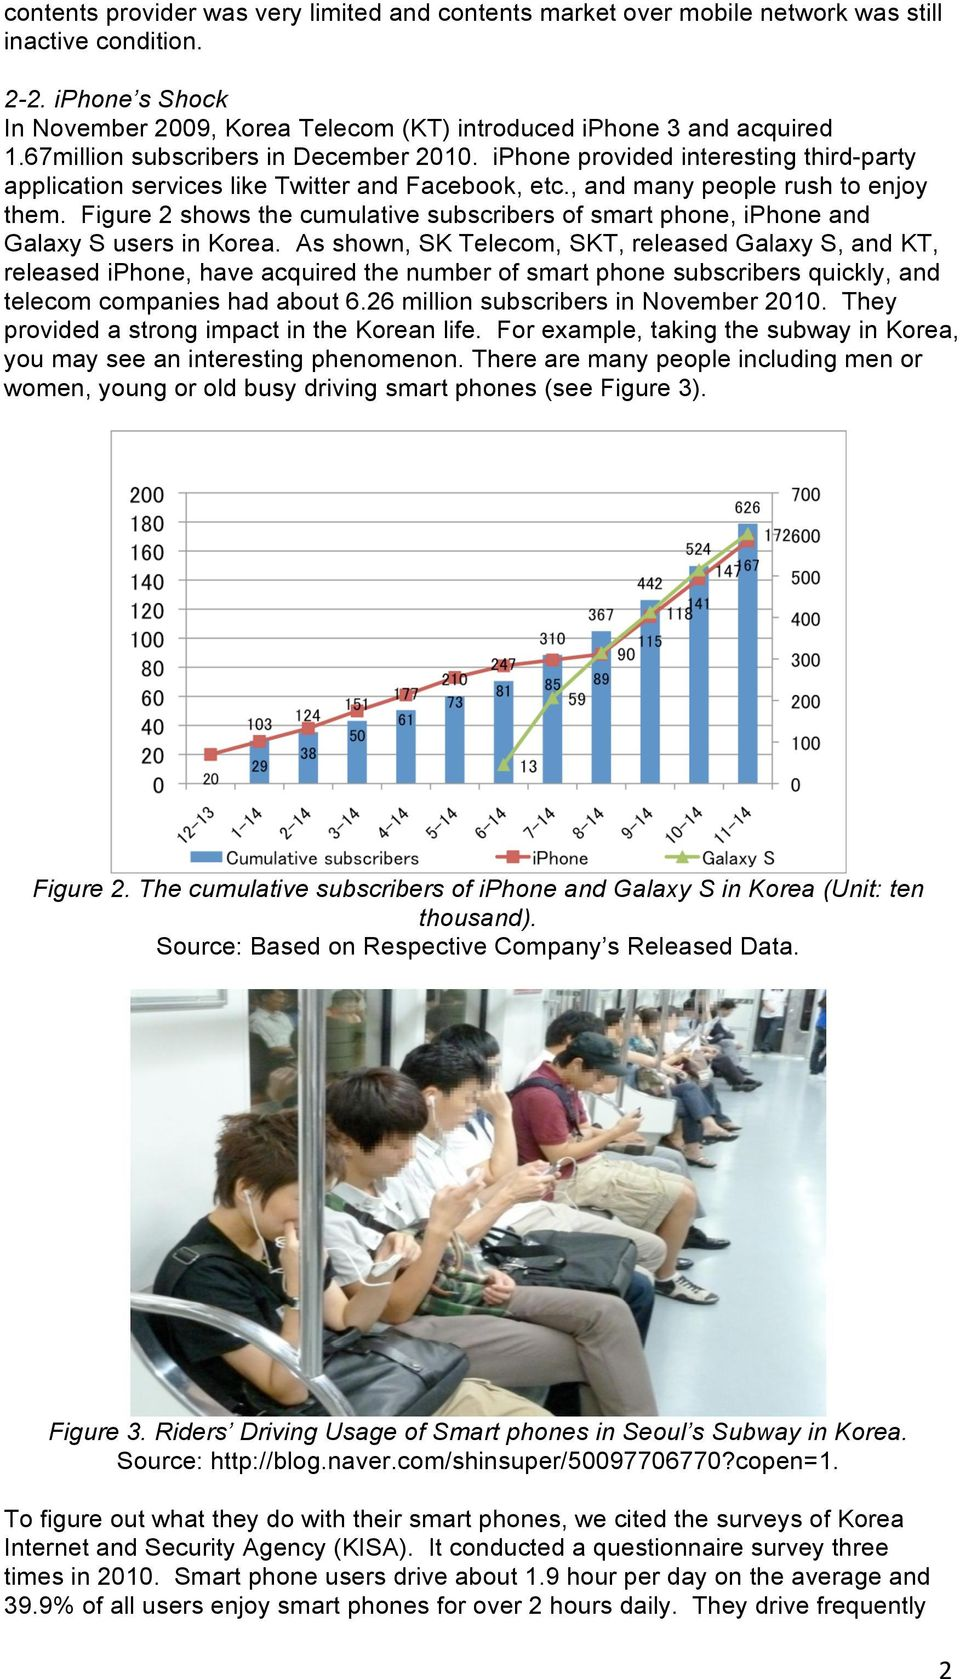 Figure 2 shows the cumulative subscribers of smart phone, iphone and Galaxy S users in Korea.